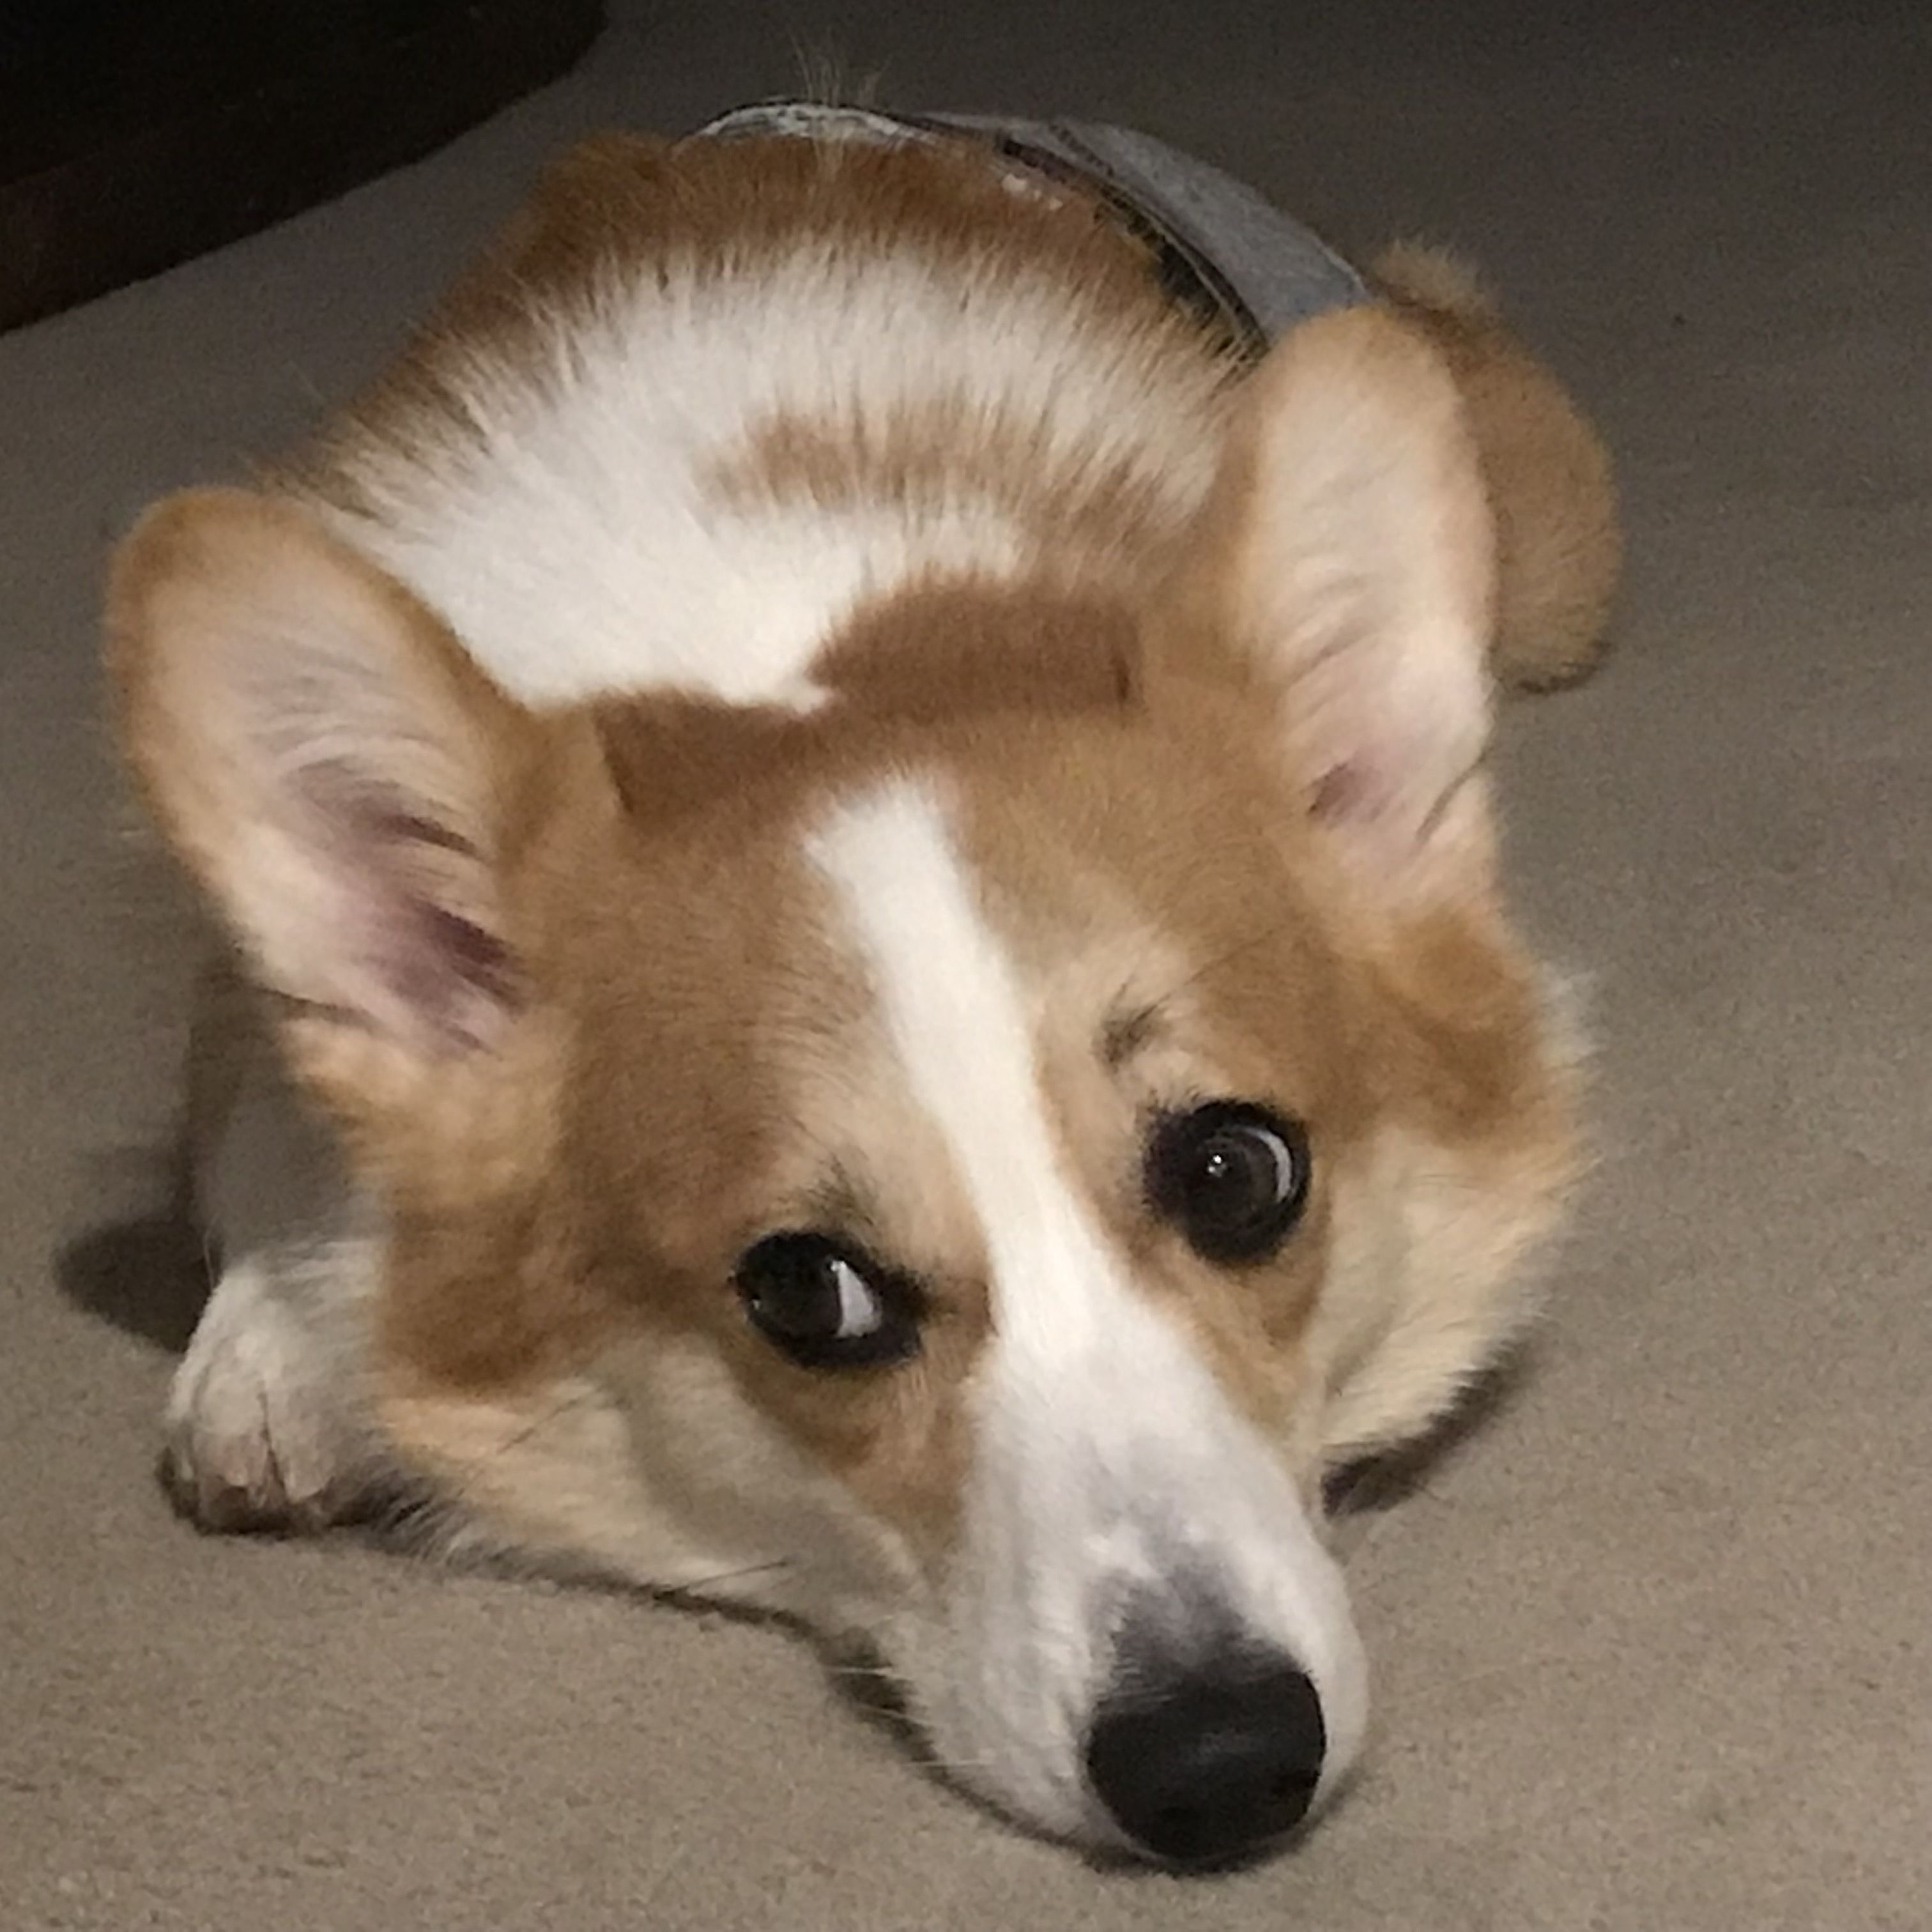 コーギー2歳のケアヒです インスタグラムフォローしてね I M Pembroke Welsh Corgi 2 Years Old Boy Please Follow Me Corgi Instagram Photo Photo And Video